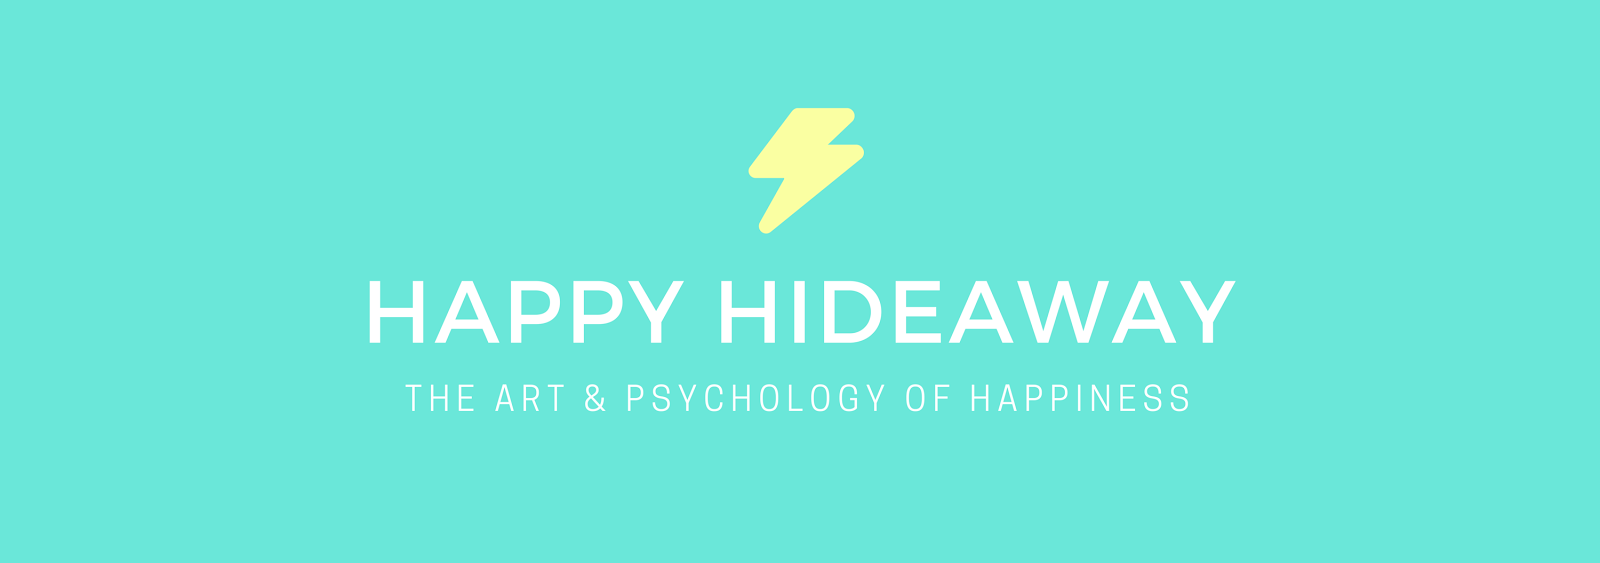 Happy Hideaway | Positive Psychology Workshops and Retreats